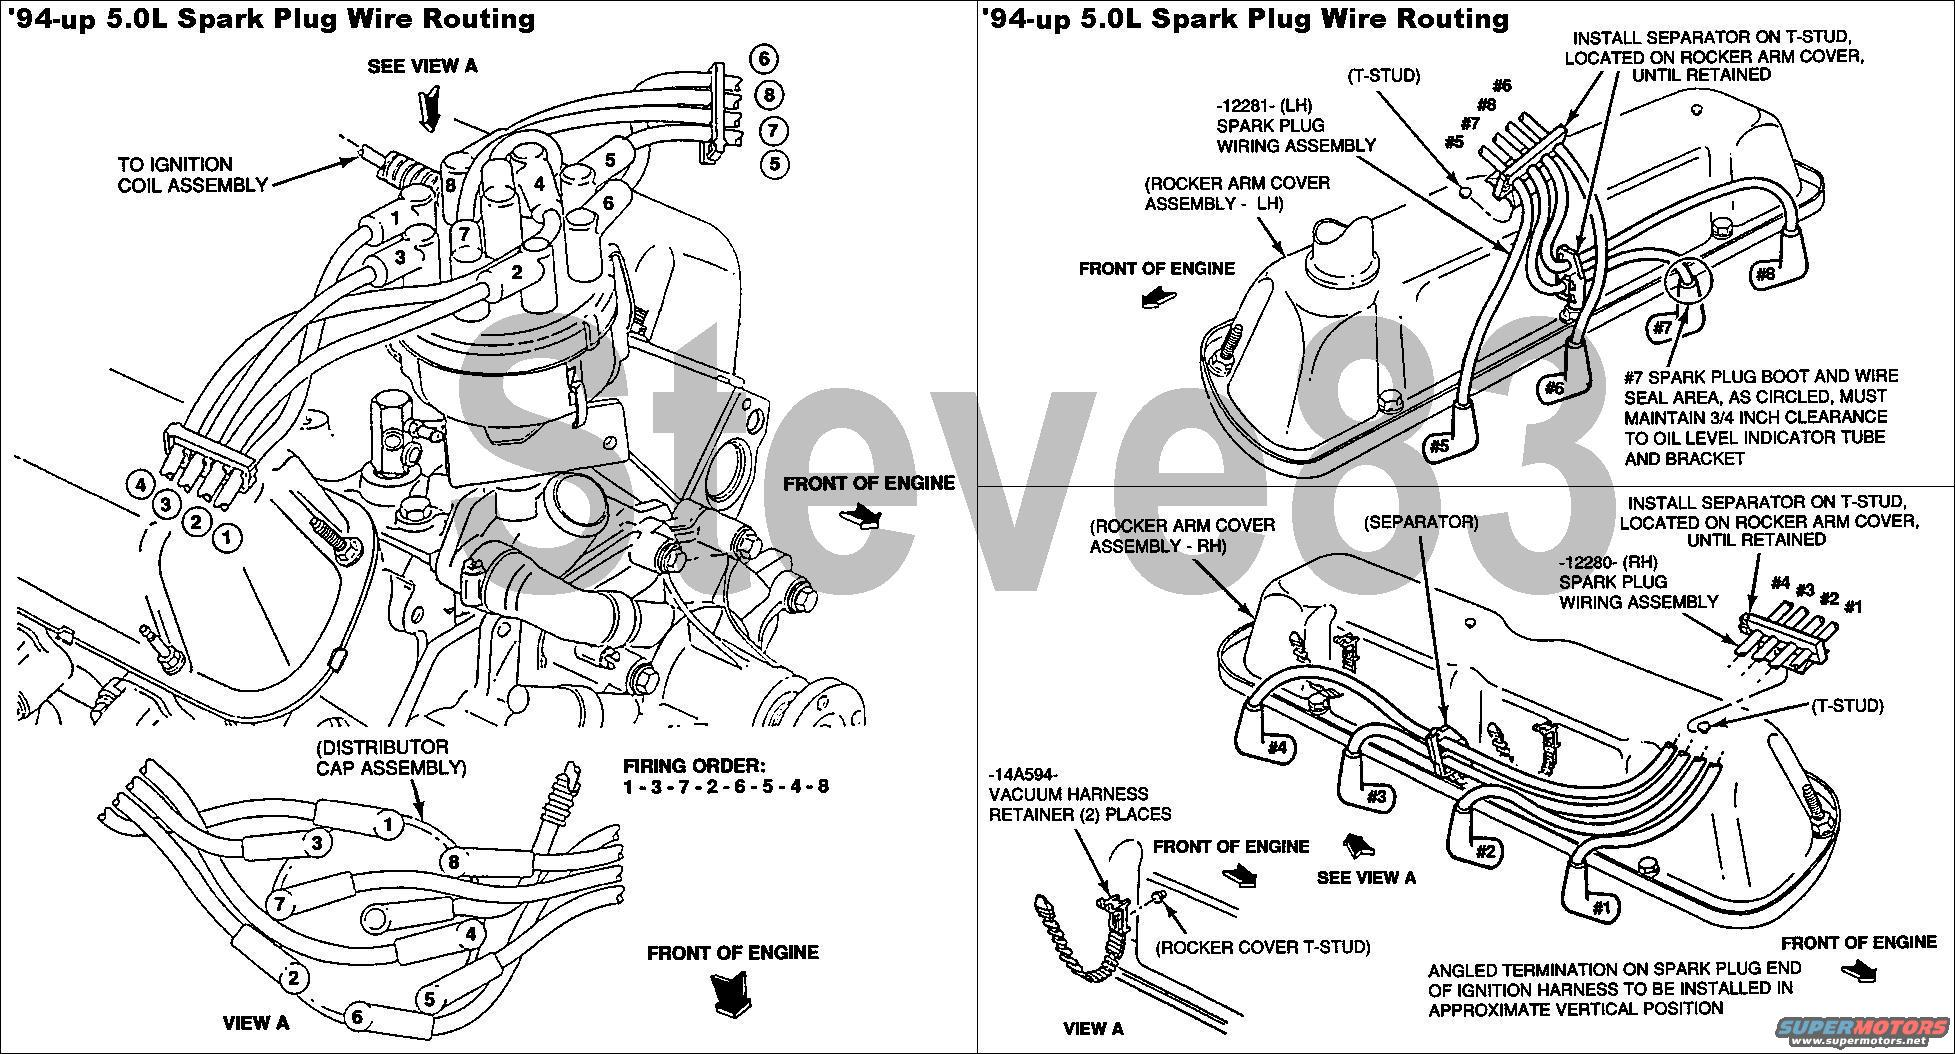 Ford Bronco 2 Engine Wiring Harness Schematics Diagram 83 Mustang 1983 Tsbs Fsas Recalls For 96 Broncos F150s 1988 Wire